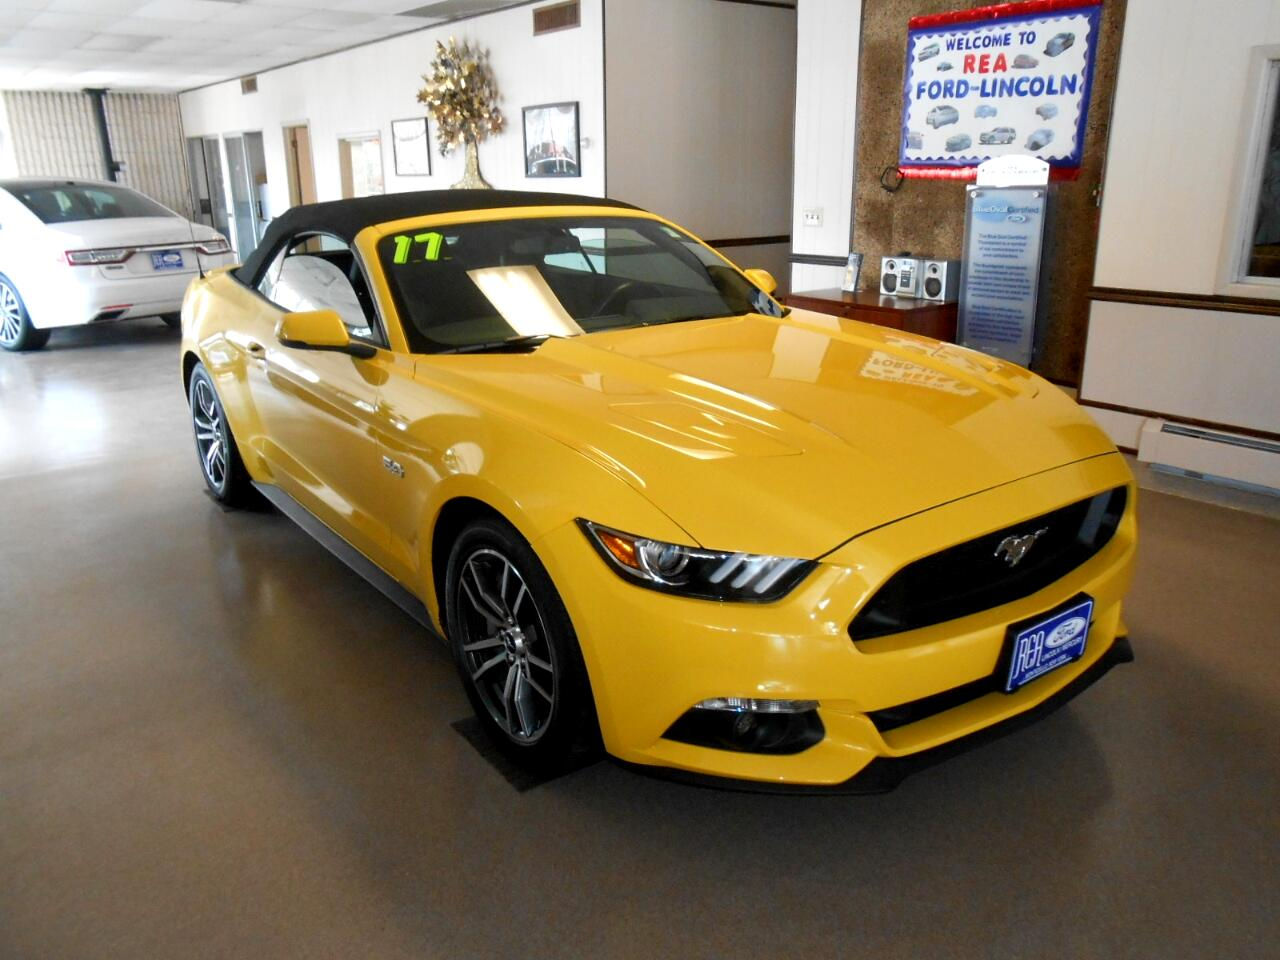 Ford Mustang GT convertible 2017